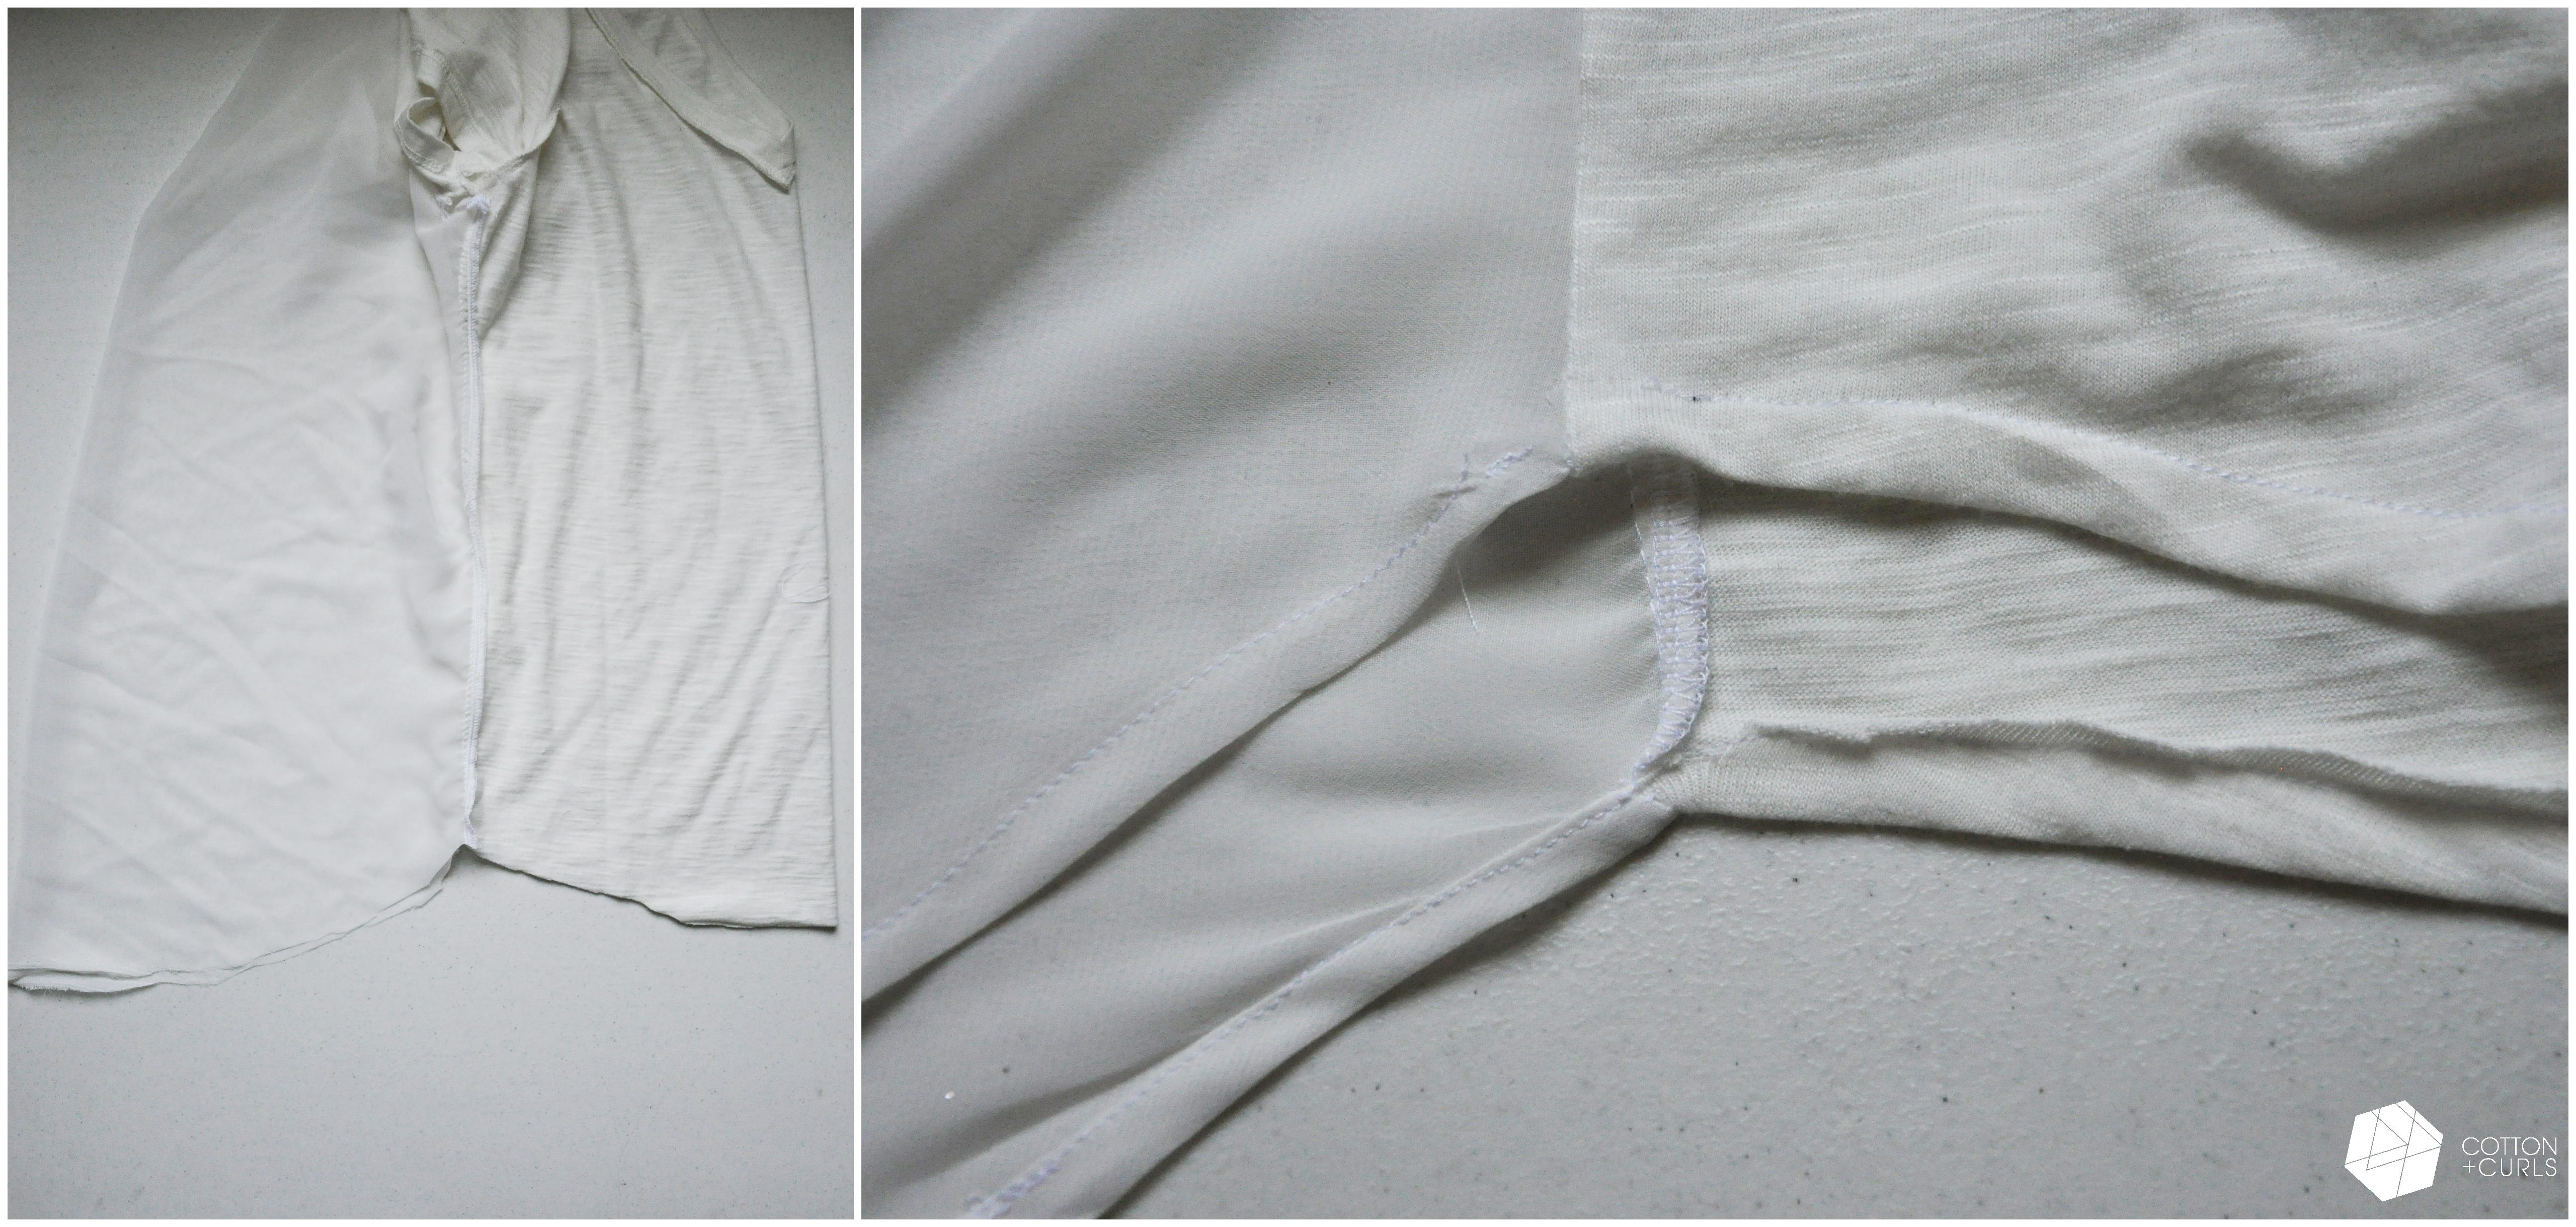 DIY tee shirt into sheer back shirt refashionstyled 2 different